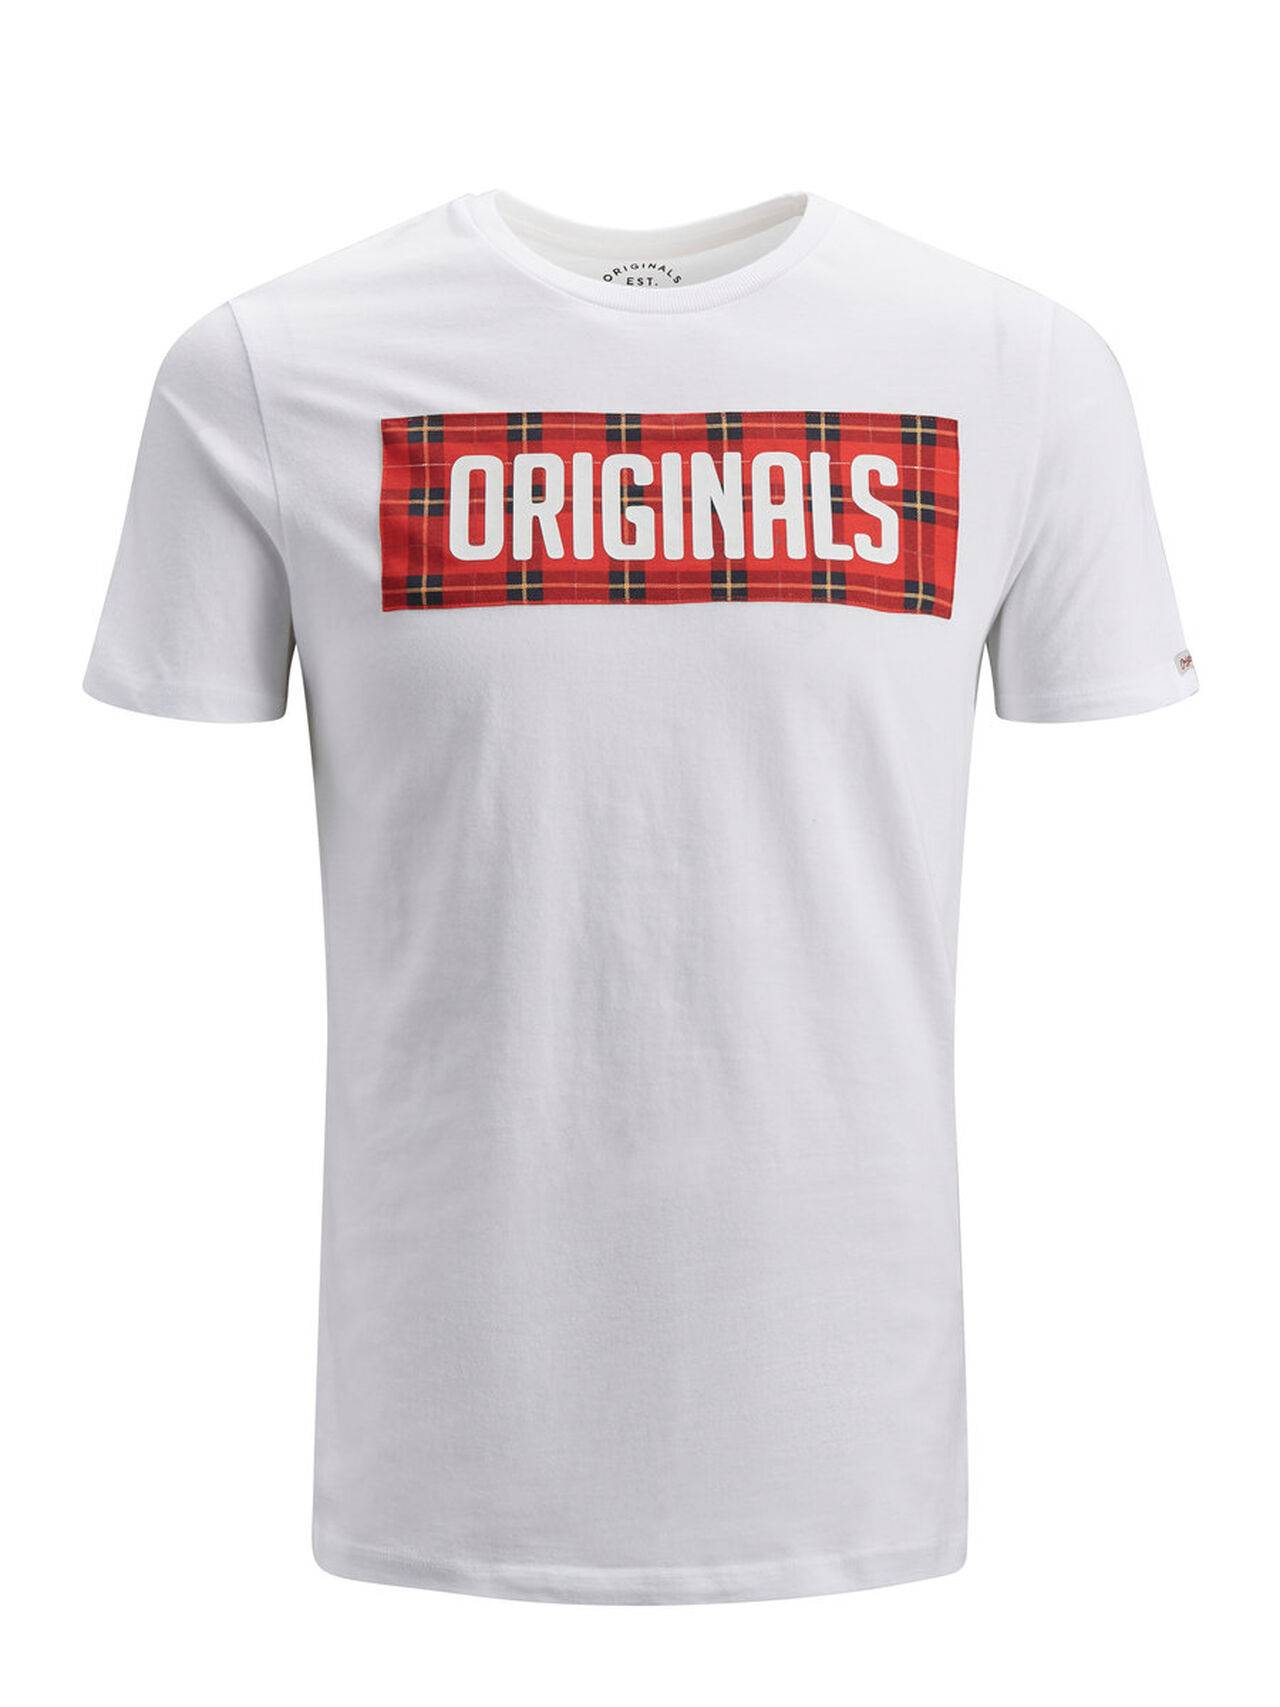 JACK & JONES Graphic T-shirt Men White White